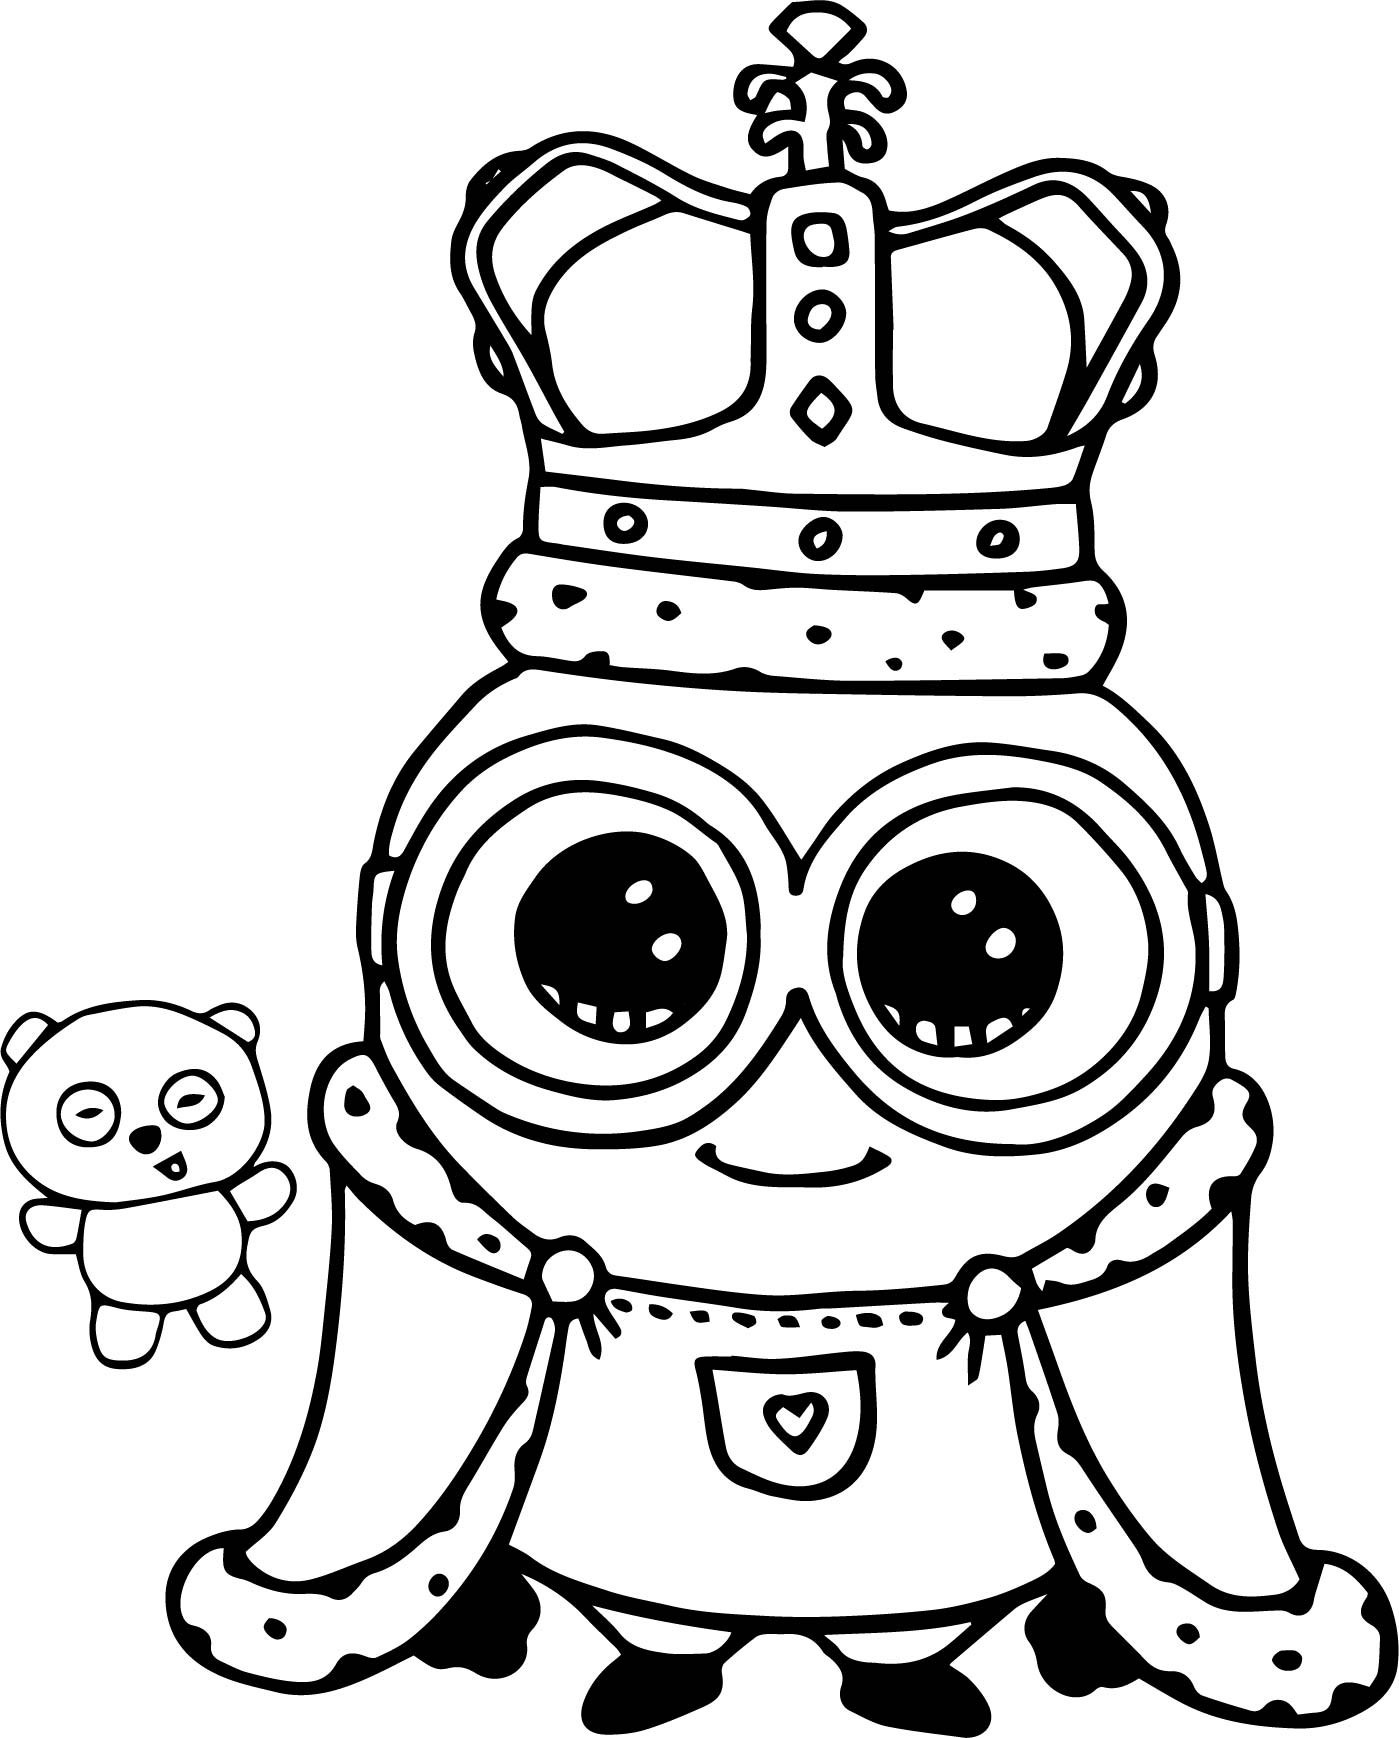 coloring pages printables free printable betty boop coloring pages for kids printables coloring pages